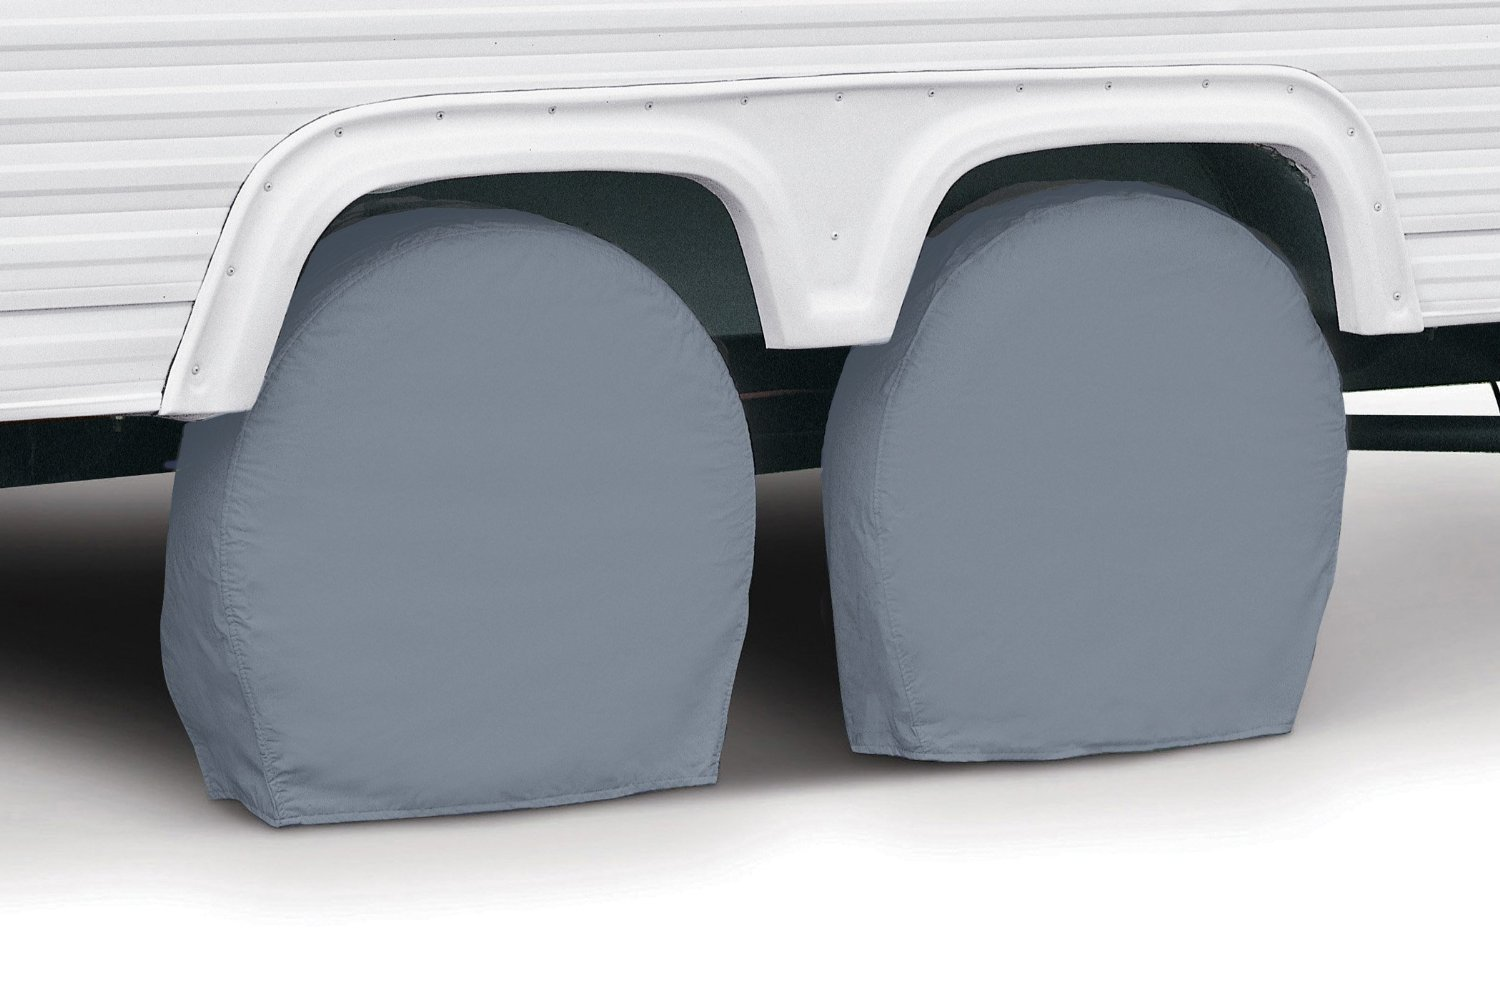 Classic Accessories OverDrive Standard RV & Trailer Wheel Cover